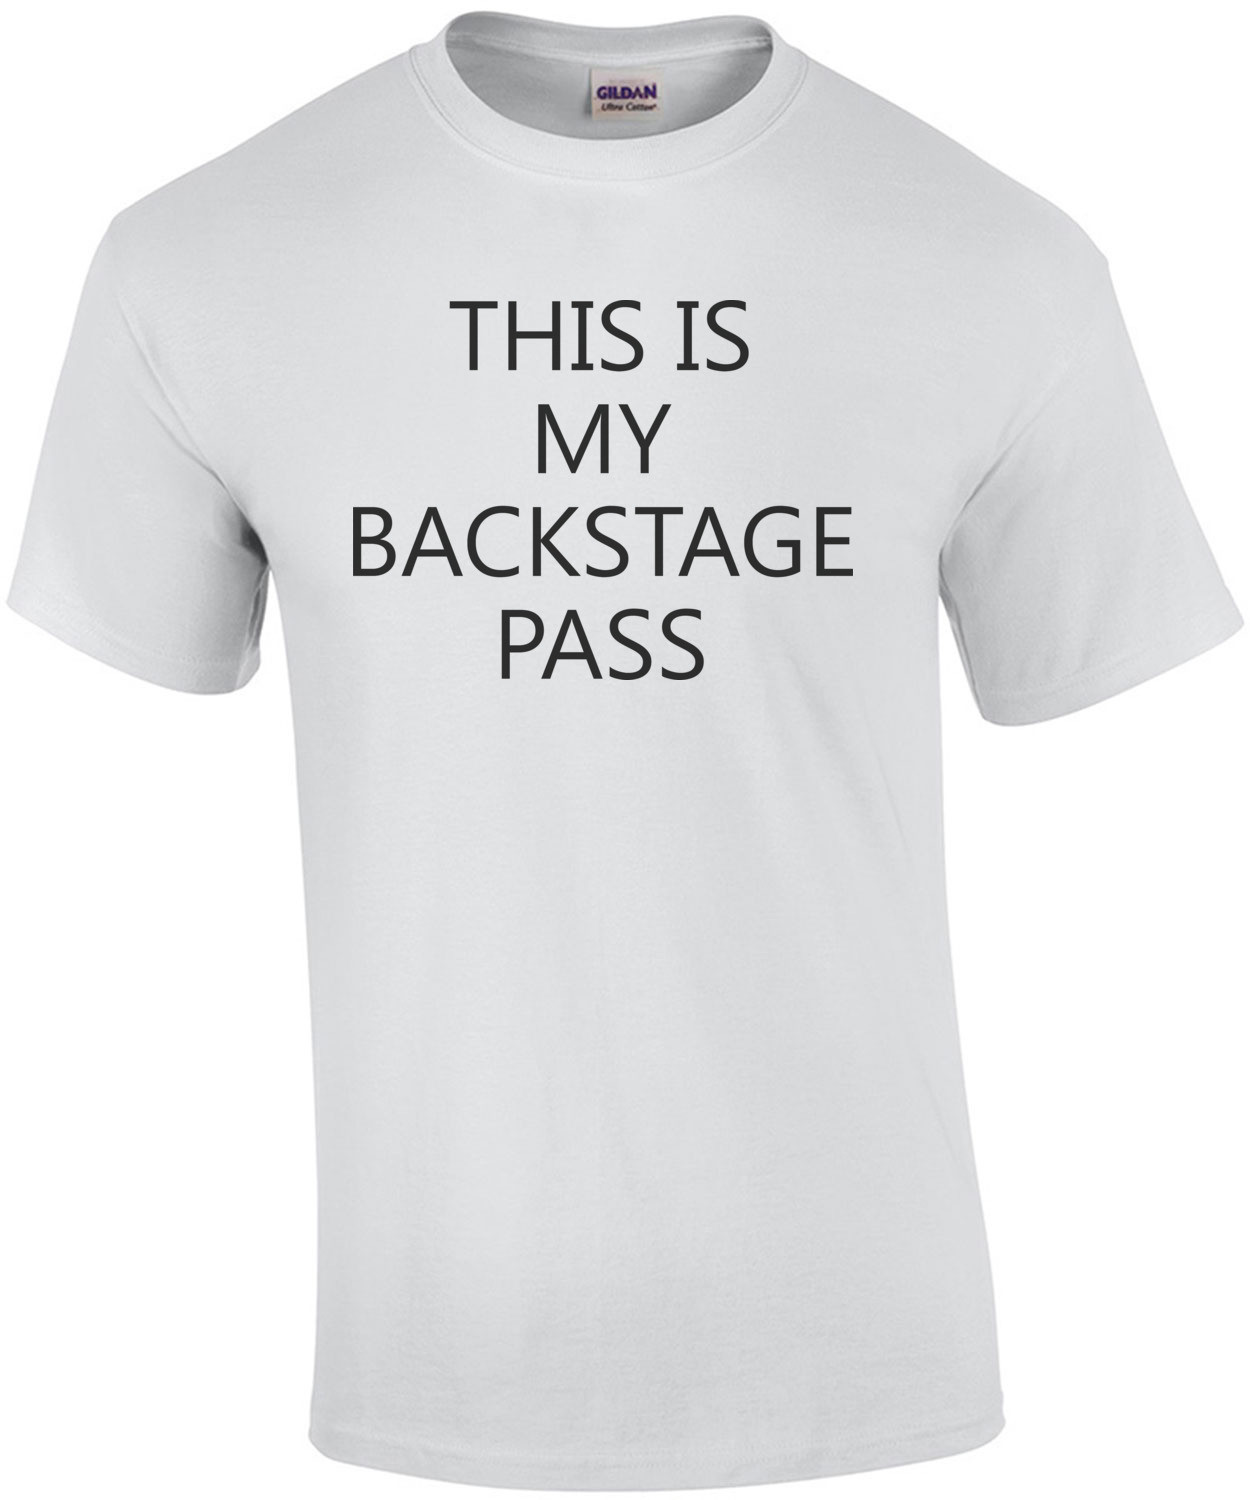 This Is My Backstage Pass T-Shirt